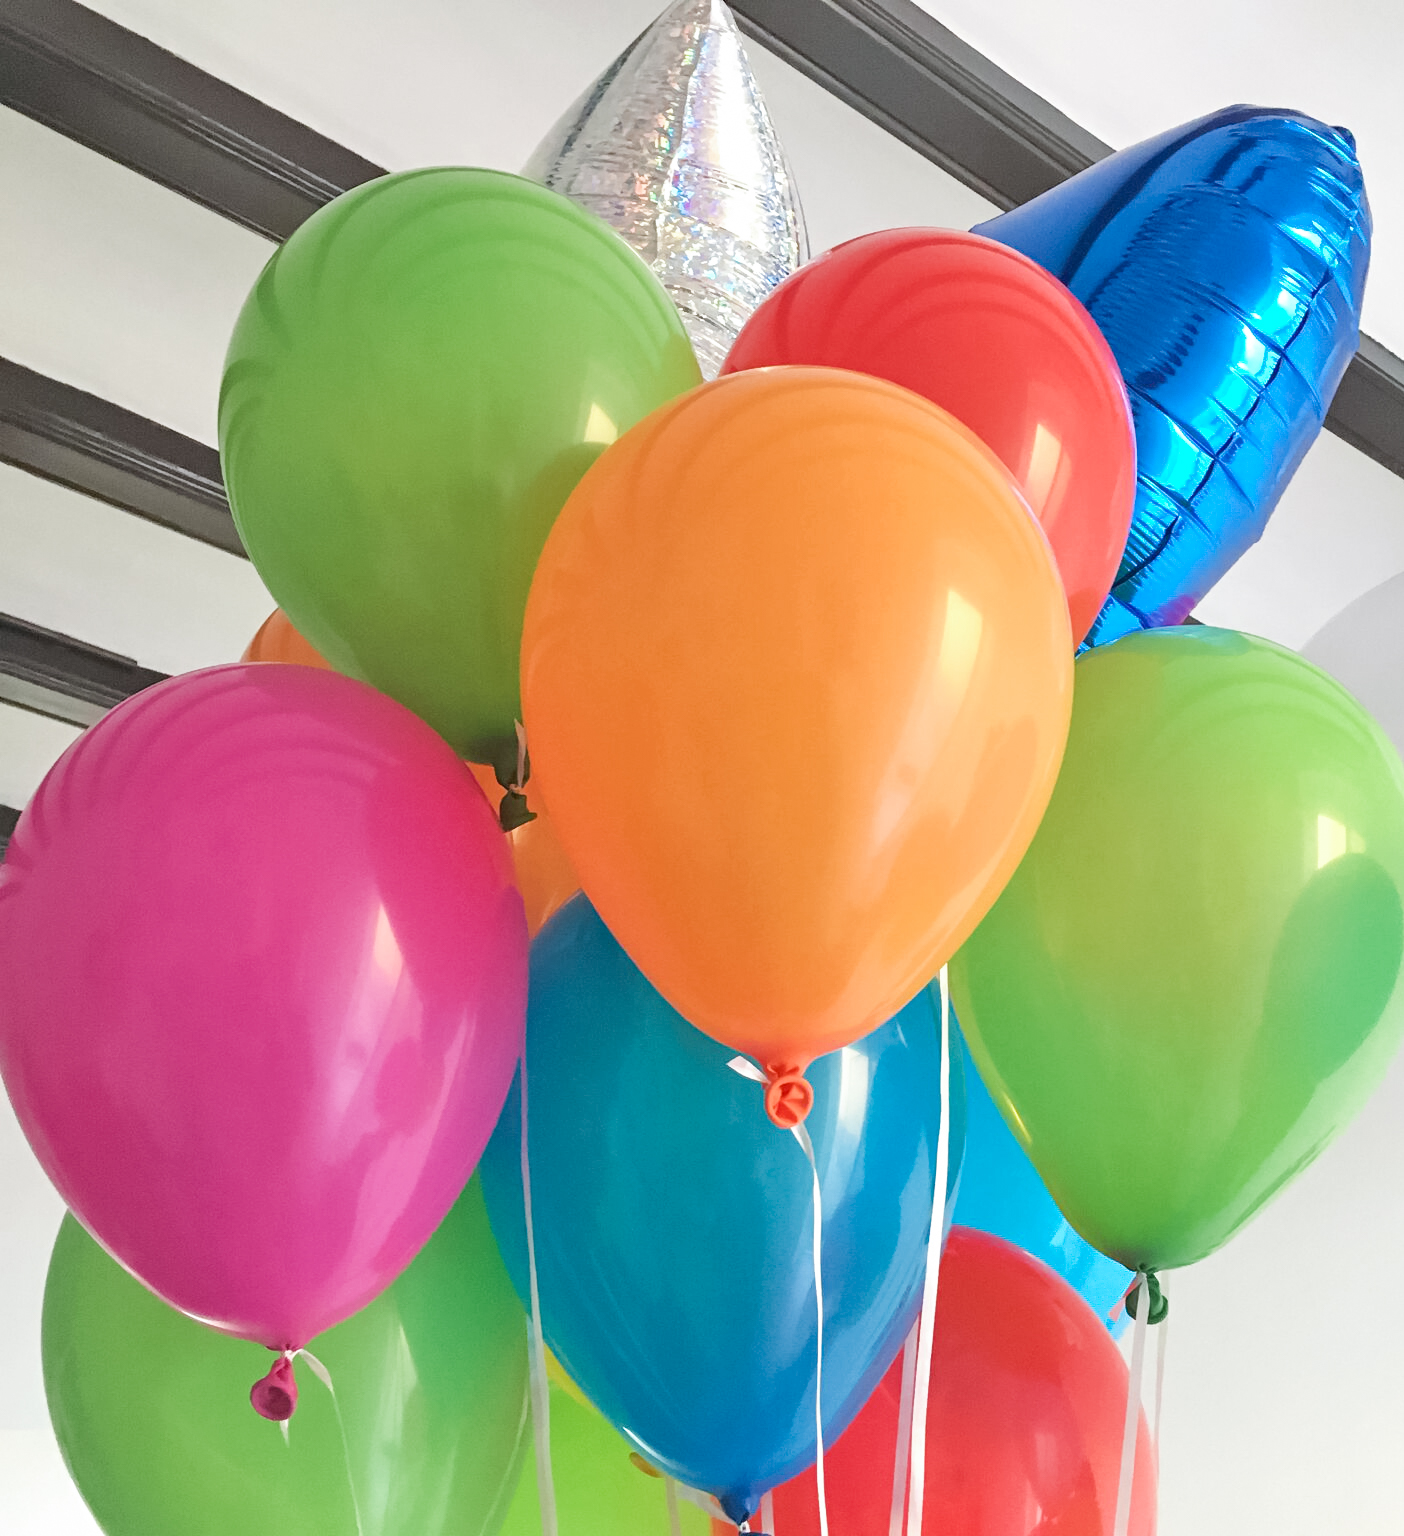 Helium balloons from Globo Image